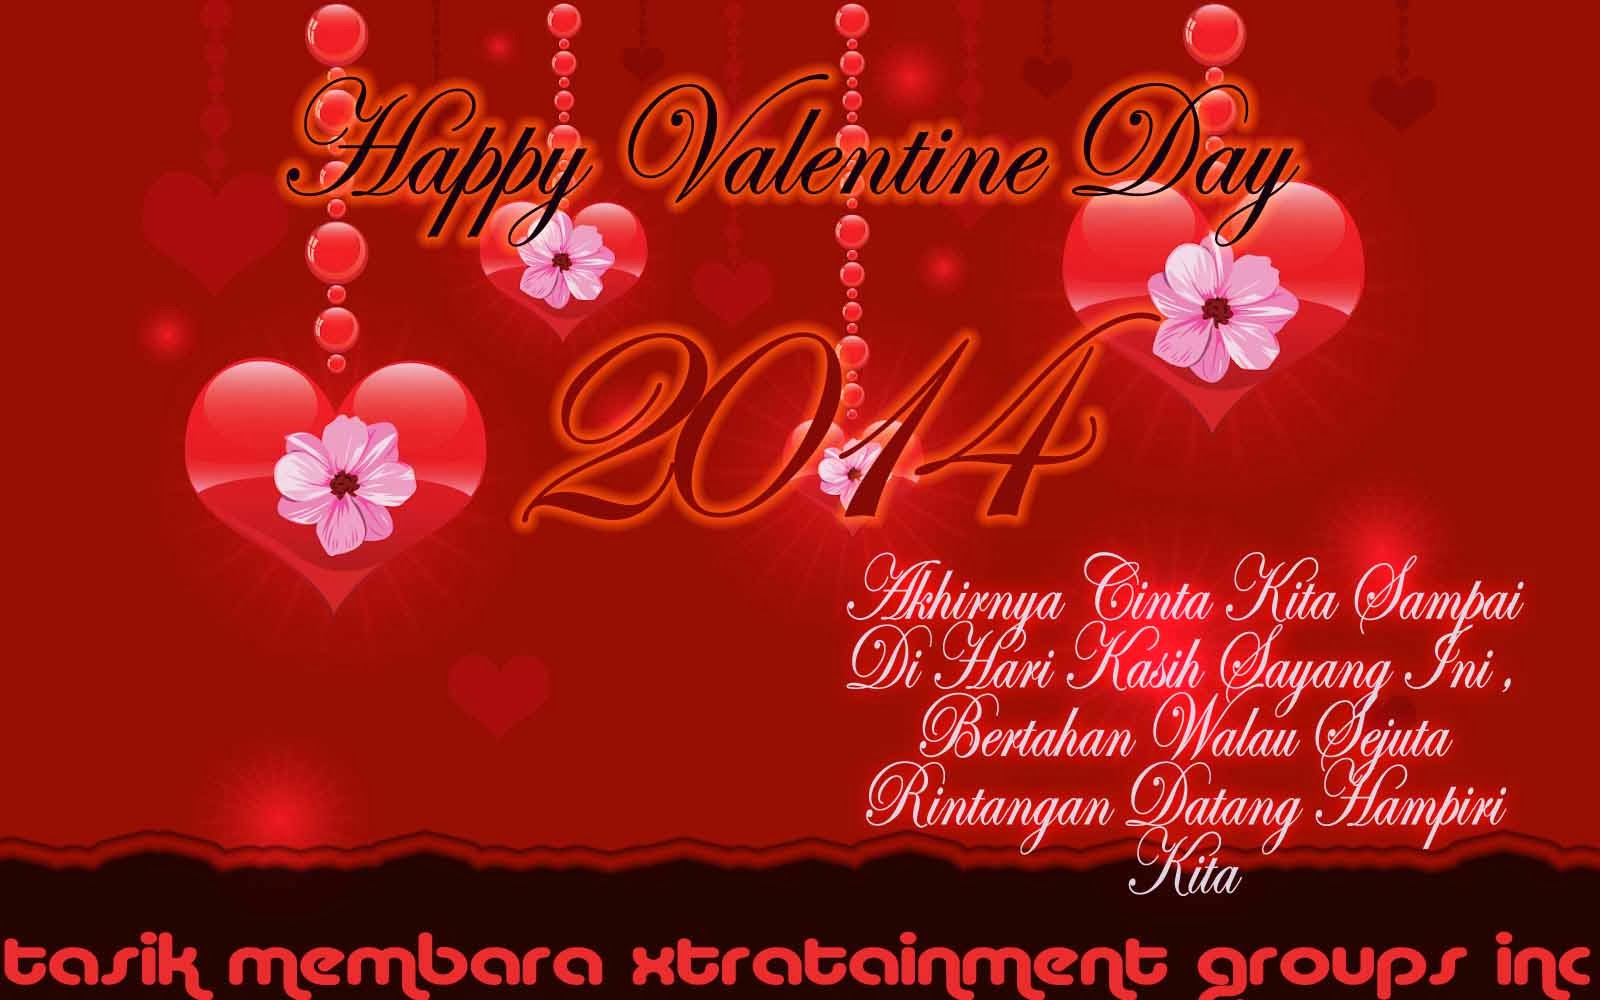 Kartu Ucapan Happy Valentine Days Romance